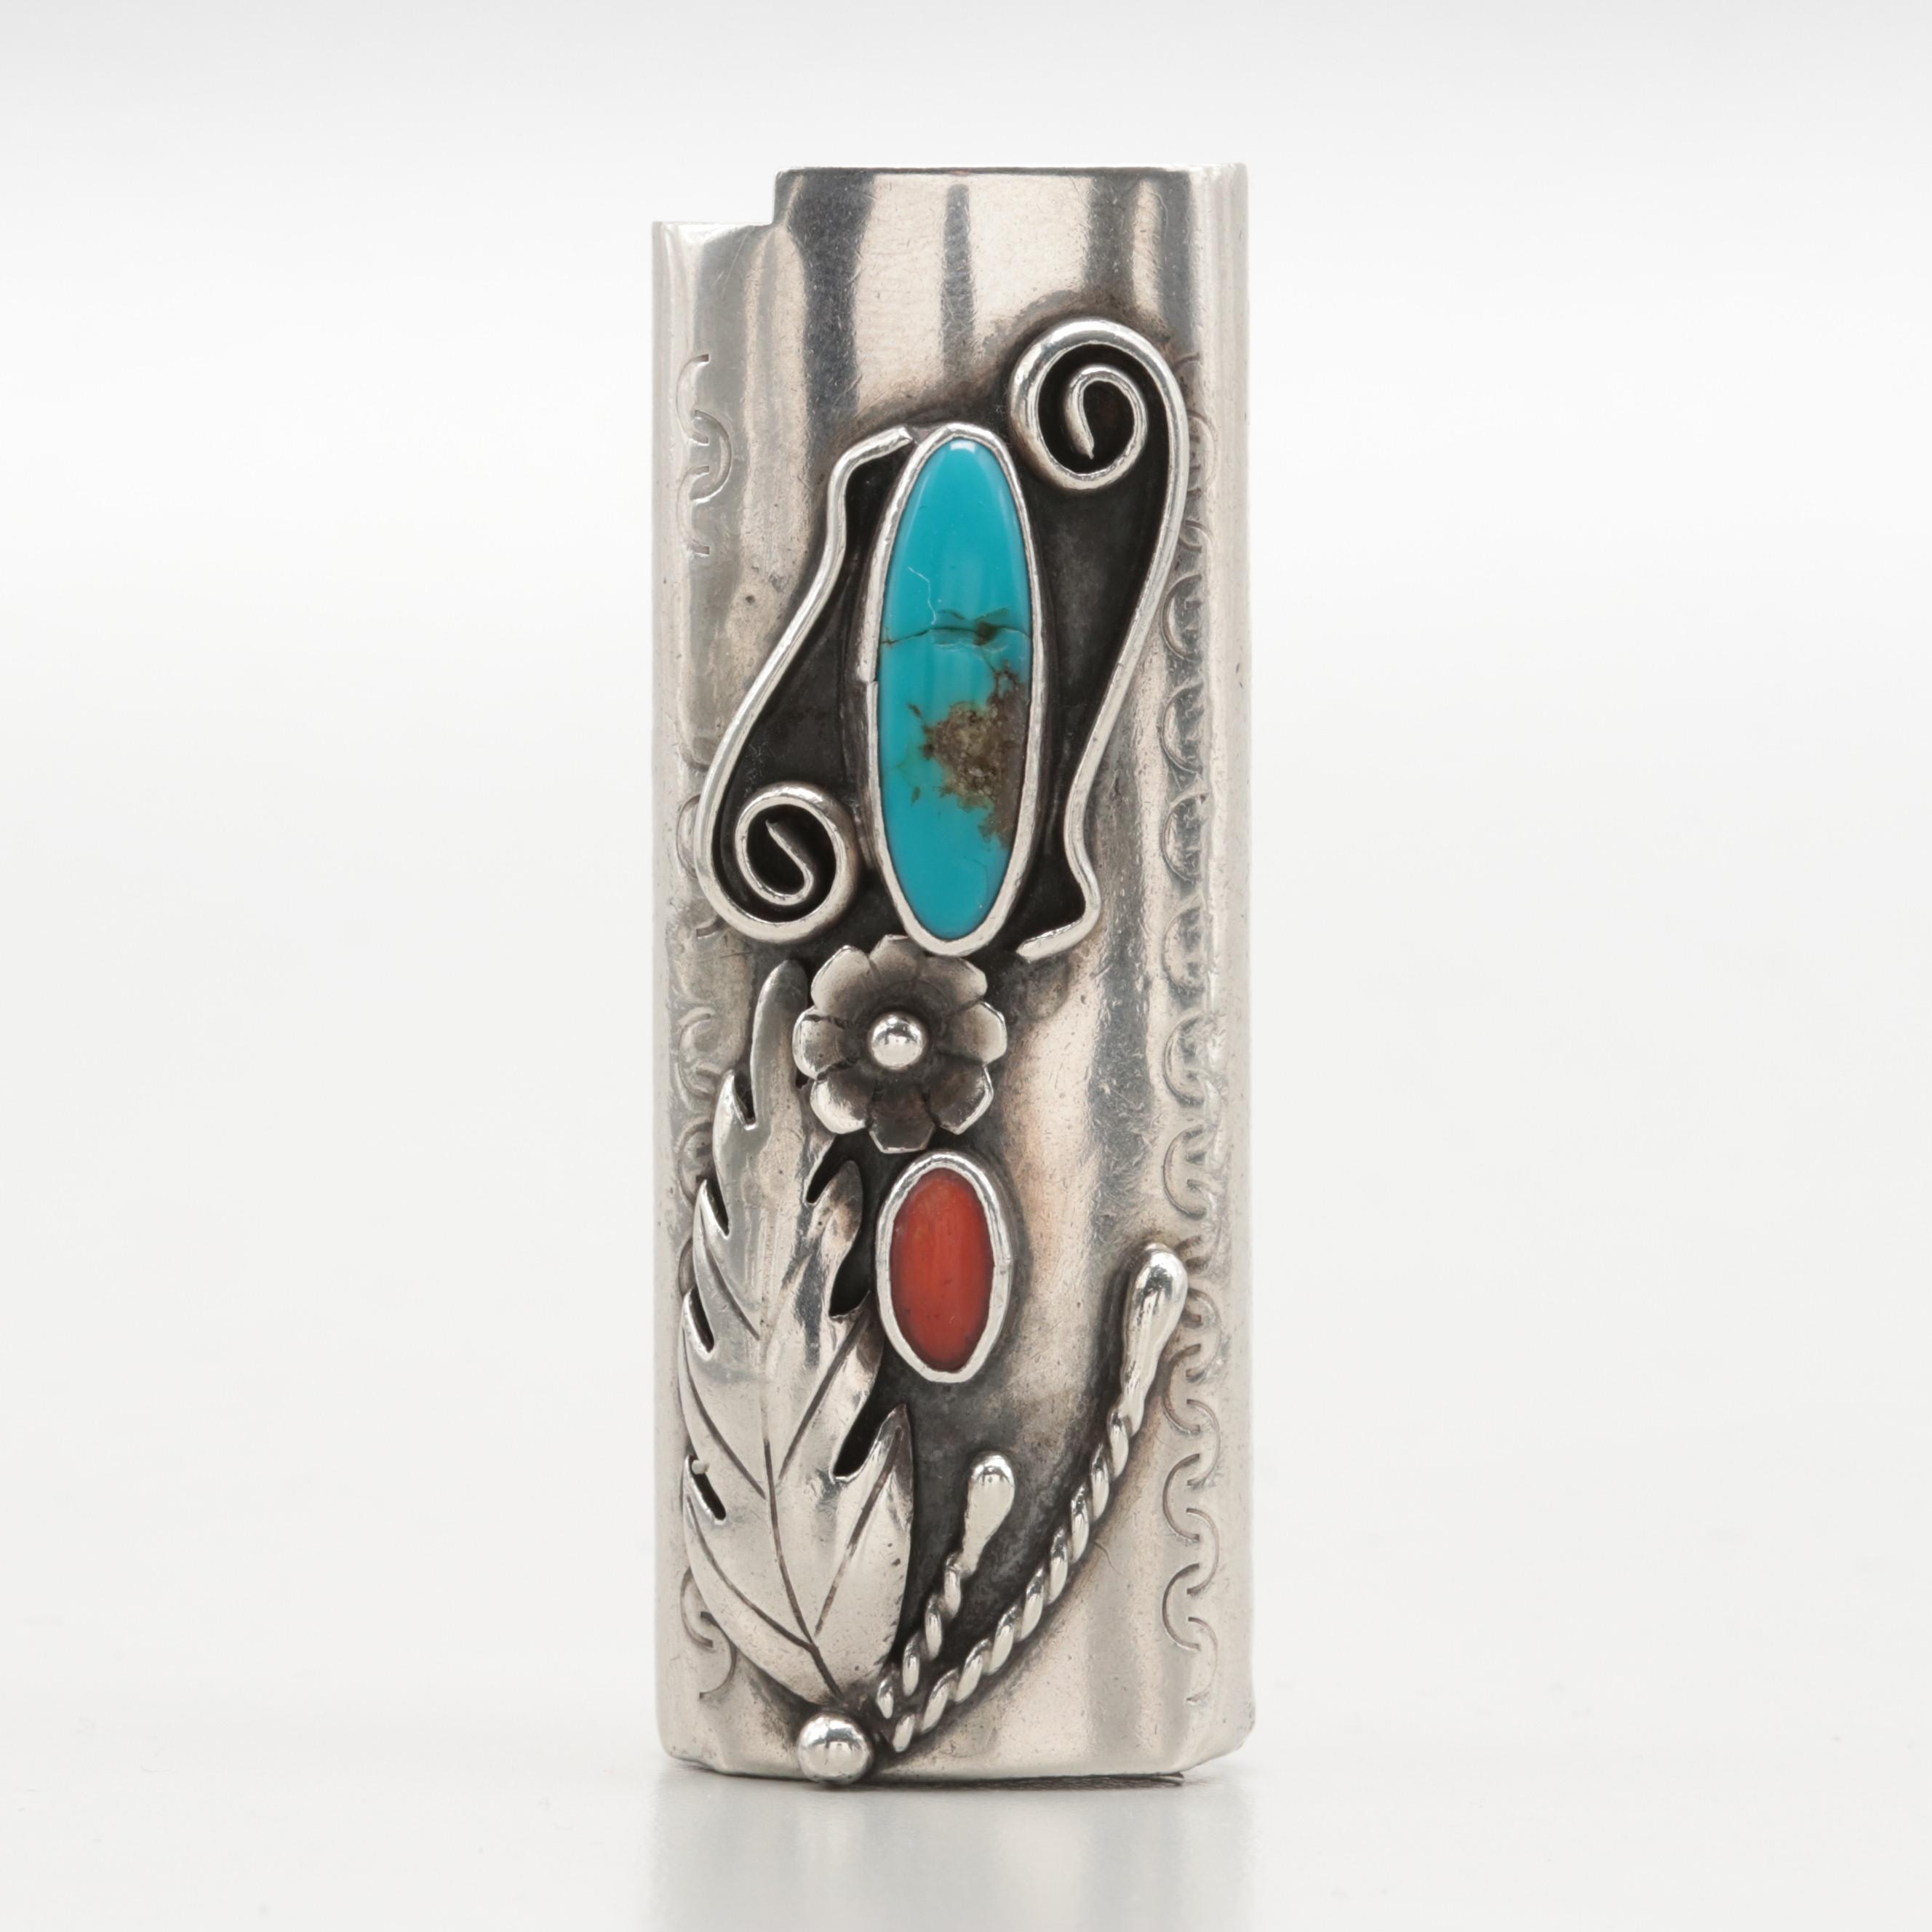 1970s Sterling Silver Lighter Sleeve with Set Turquoise, Coral and Applique Work